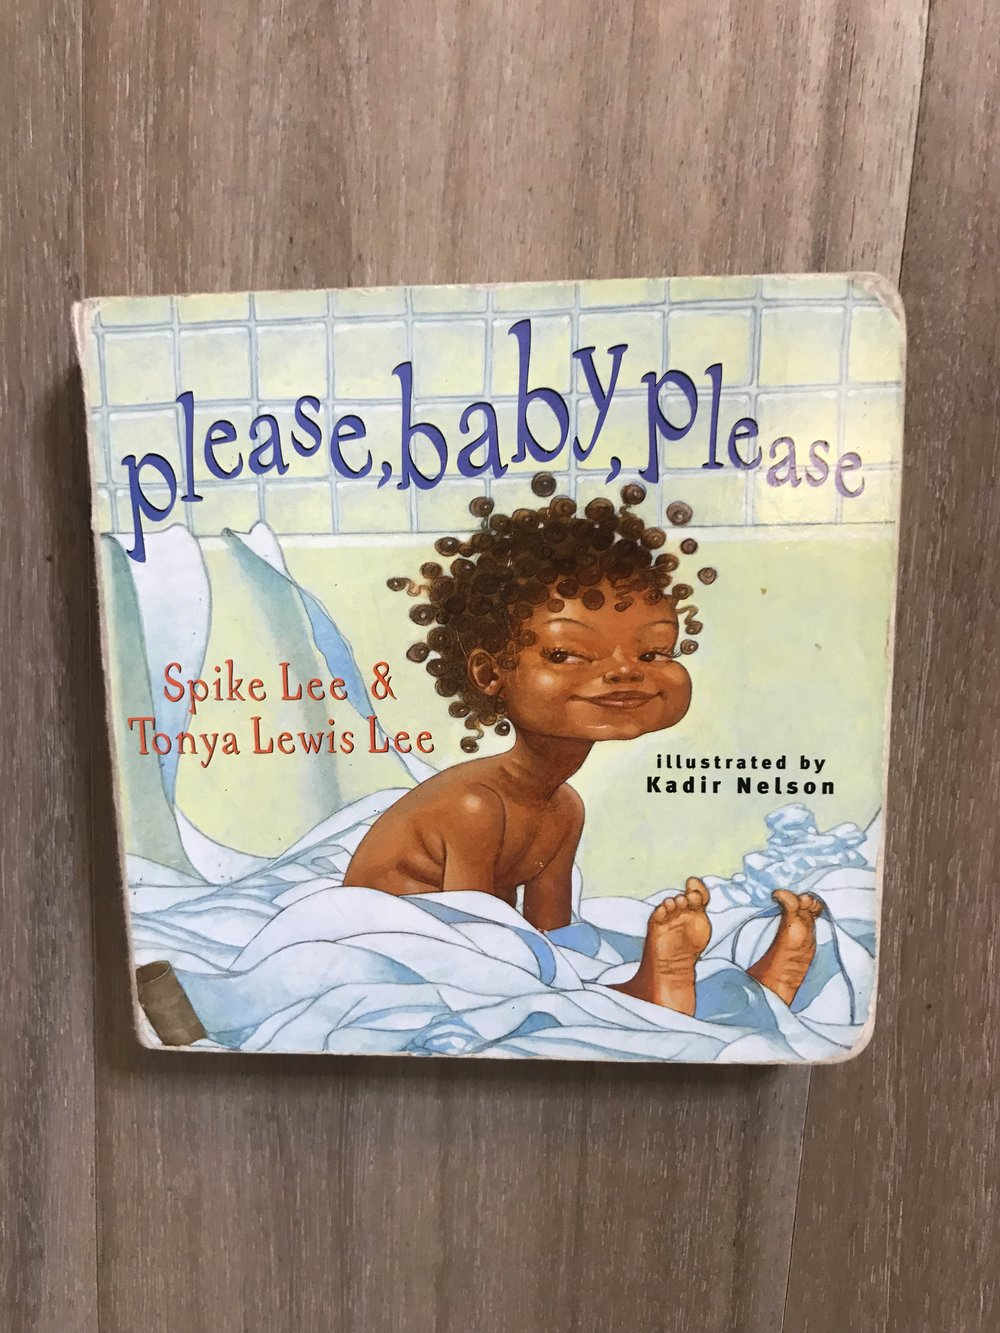 We received this book as a gift when Elle was a baby. This is a HWTH fave!!